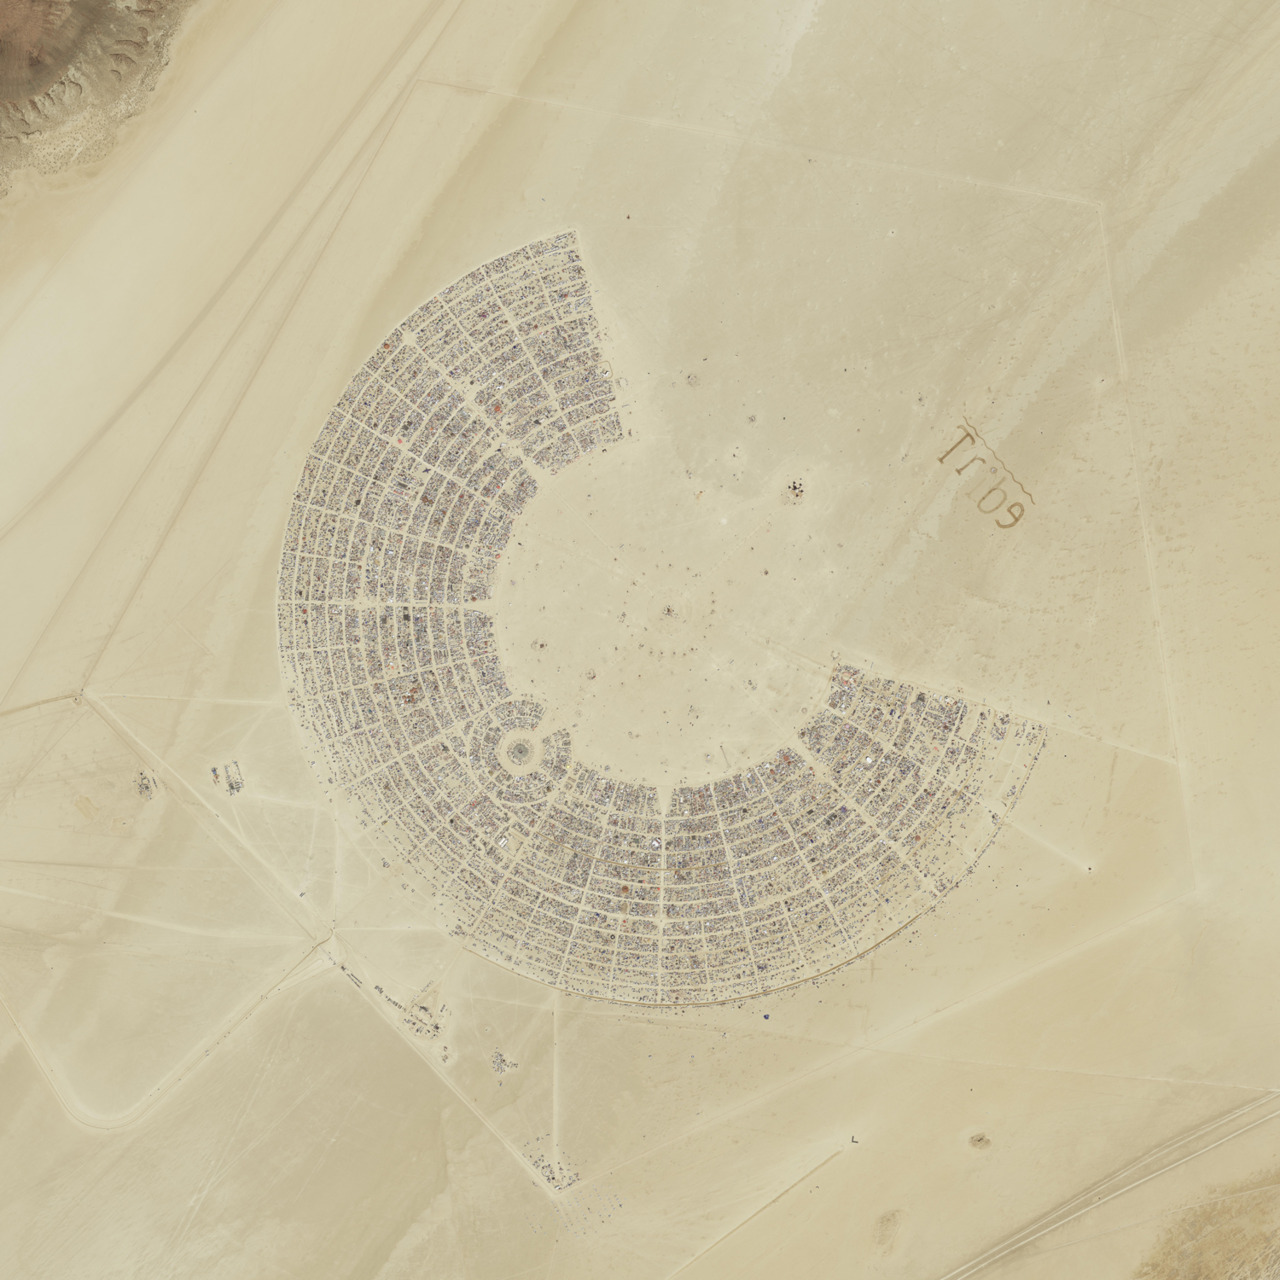 Black Rock City from above: Burning Man 2011 An awesome hi-res aerial image of Black Rock City in 2011, captured by the GeoEye satellite from more than 400 miles above the Earth's surface. See if you can spot your camp! Explore more fantastic Hi-Res satellite images at www.GeoEye.com